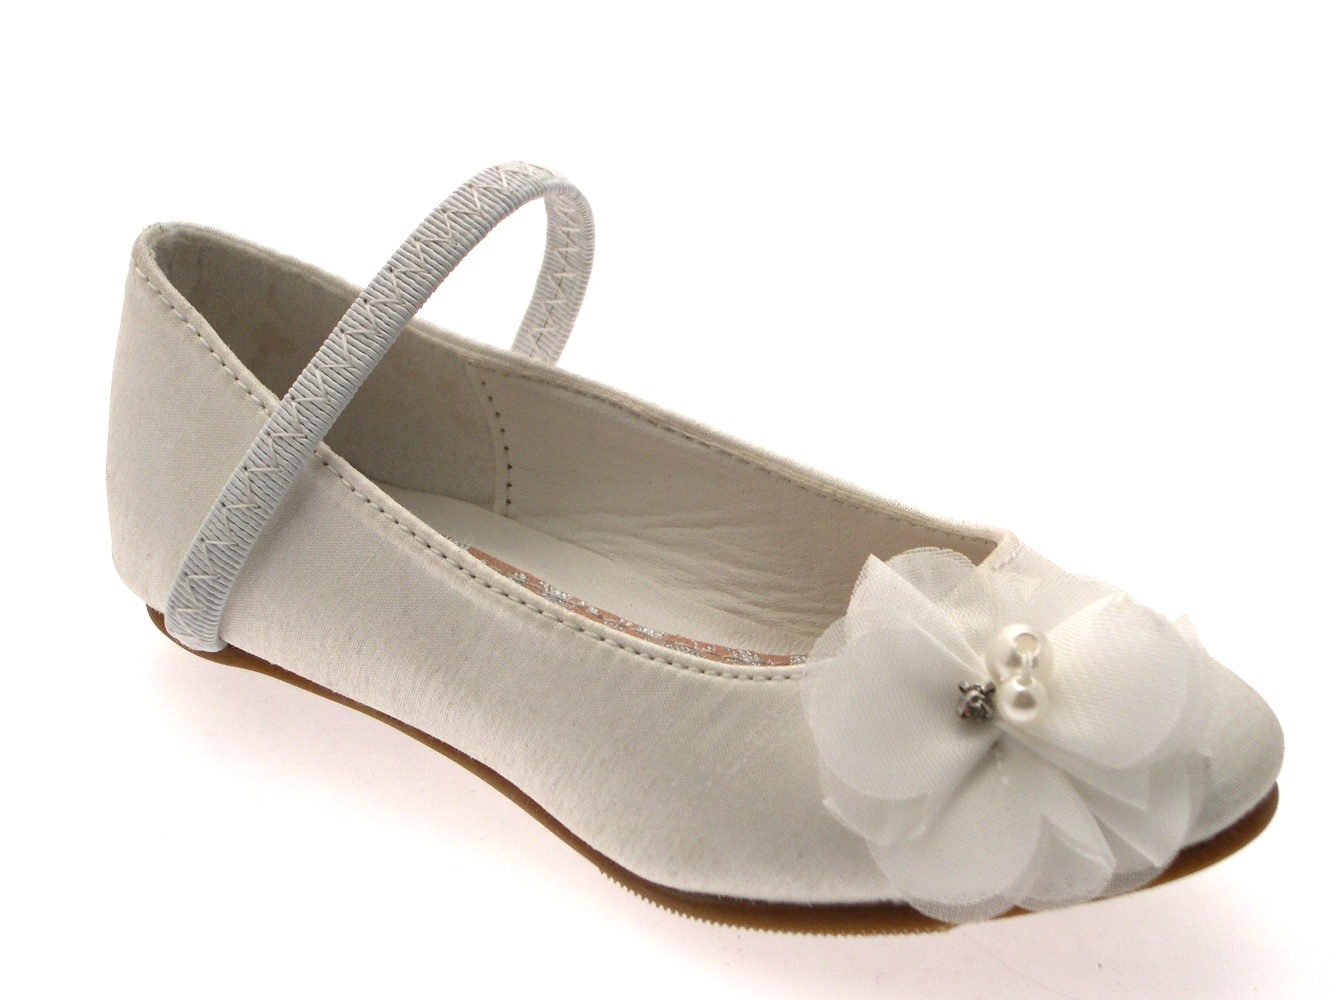 GIRLS KIDS SATIN FLOWER WEDDING BRIDAL BRIDESMAID IVORY CREAM SHOES